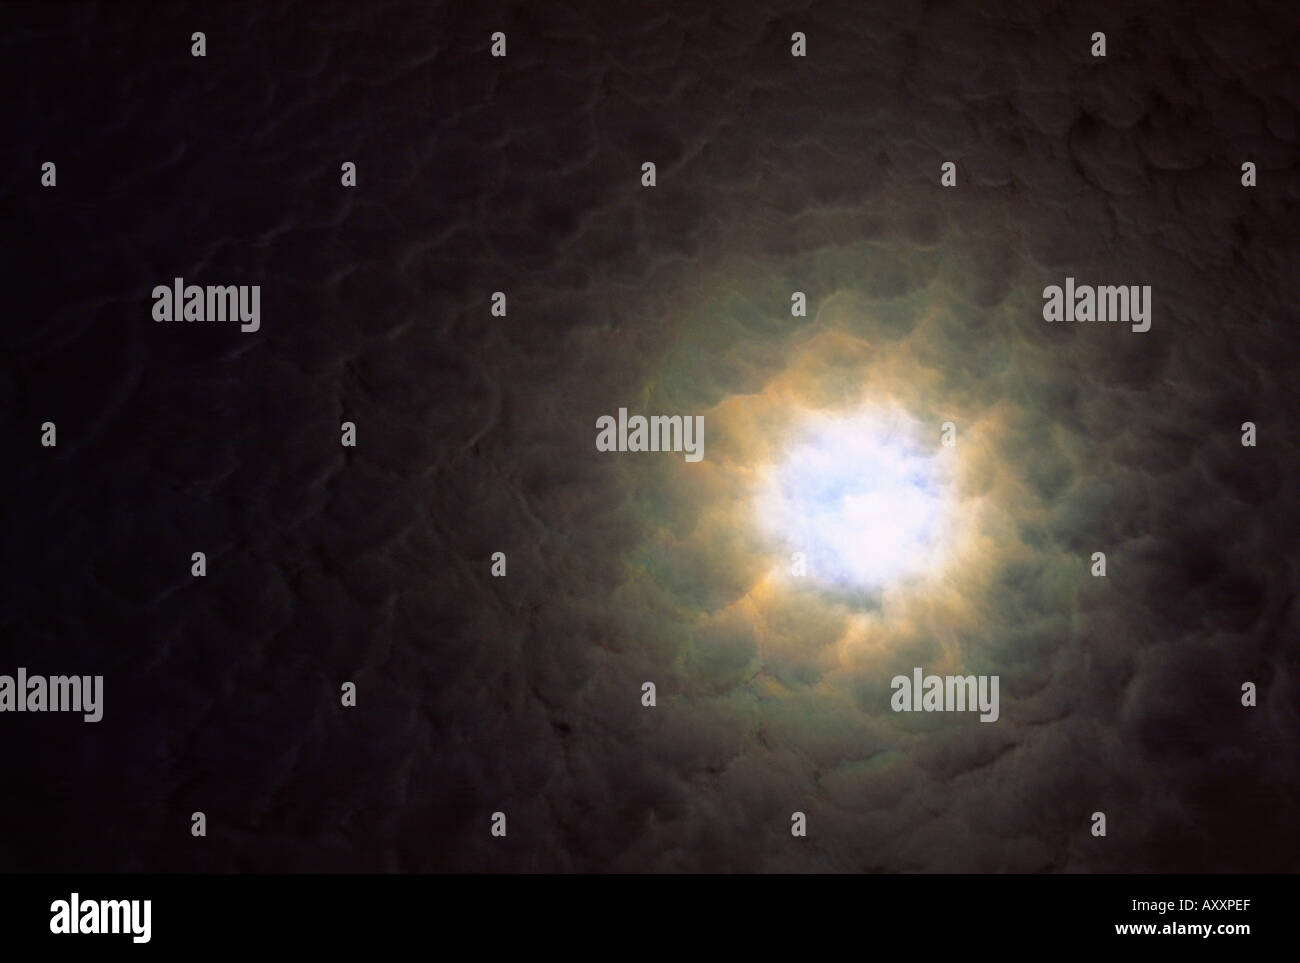 Light hole through thin cloud cover showing moon moonshine halo in night sky - Stock Image